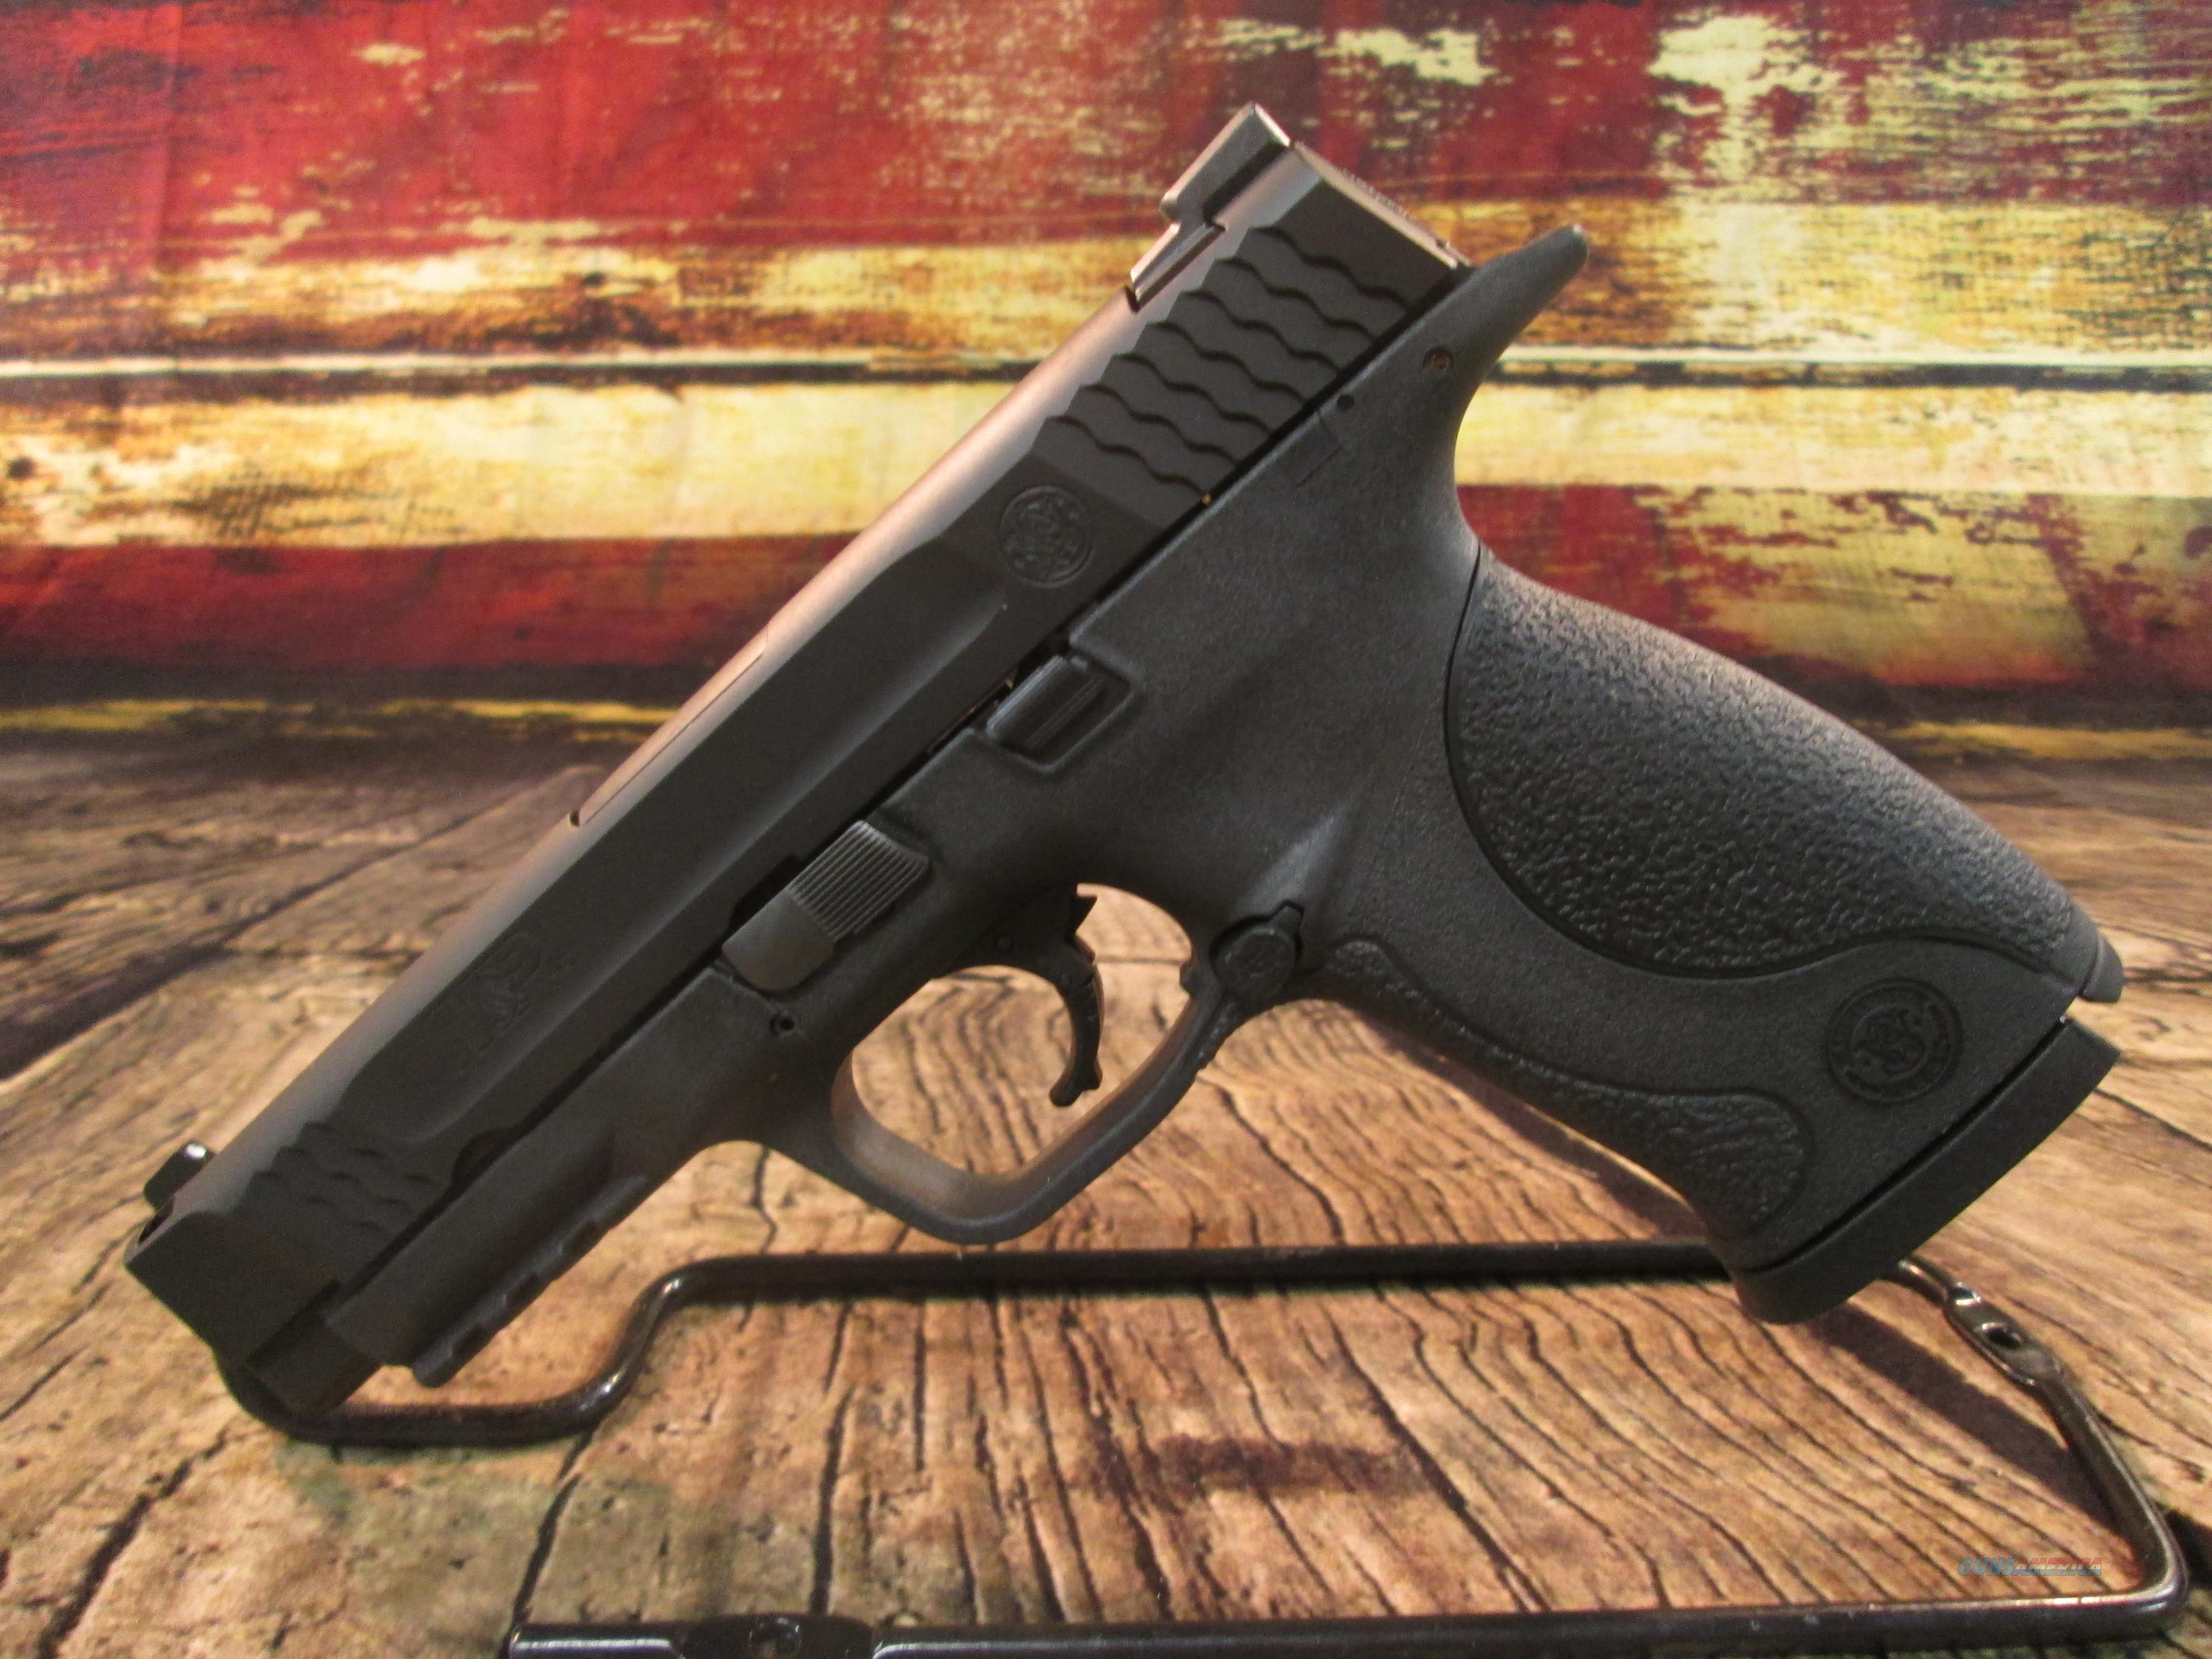 """Smith & Wesson M&P 45 Used Excellent Condition 4.5"""" .45 ACP (64832)  Guns > Pistols > Smith & Wesson Pistols - Autos > Polymer Frame"""